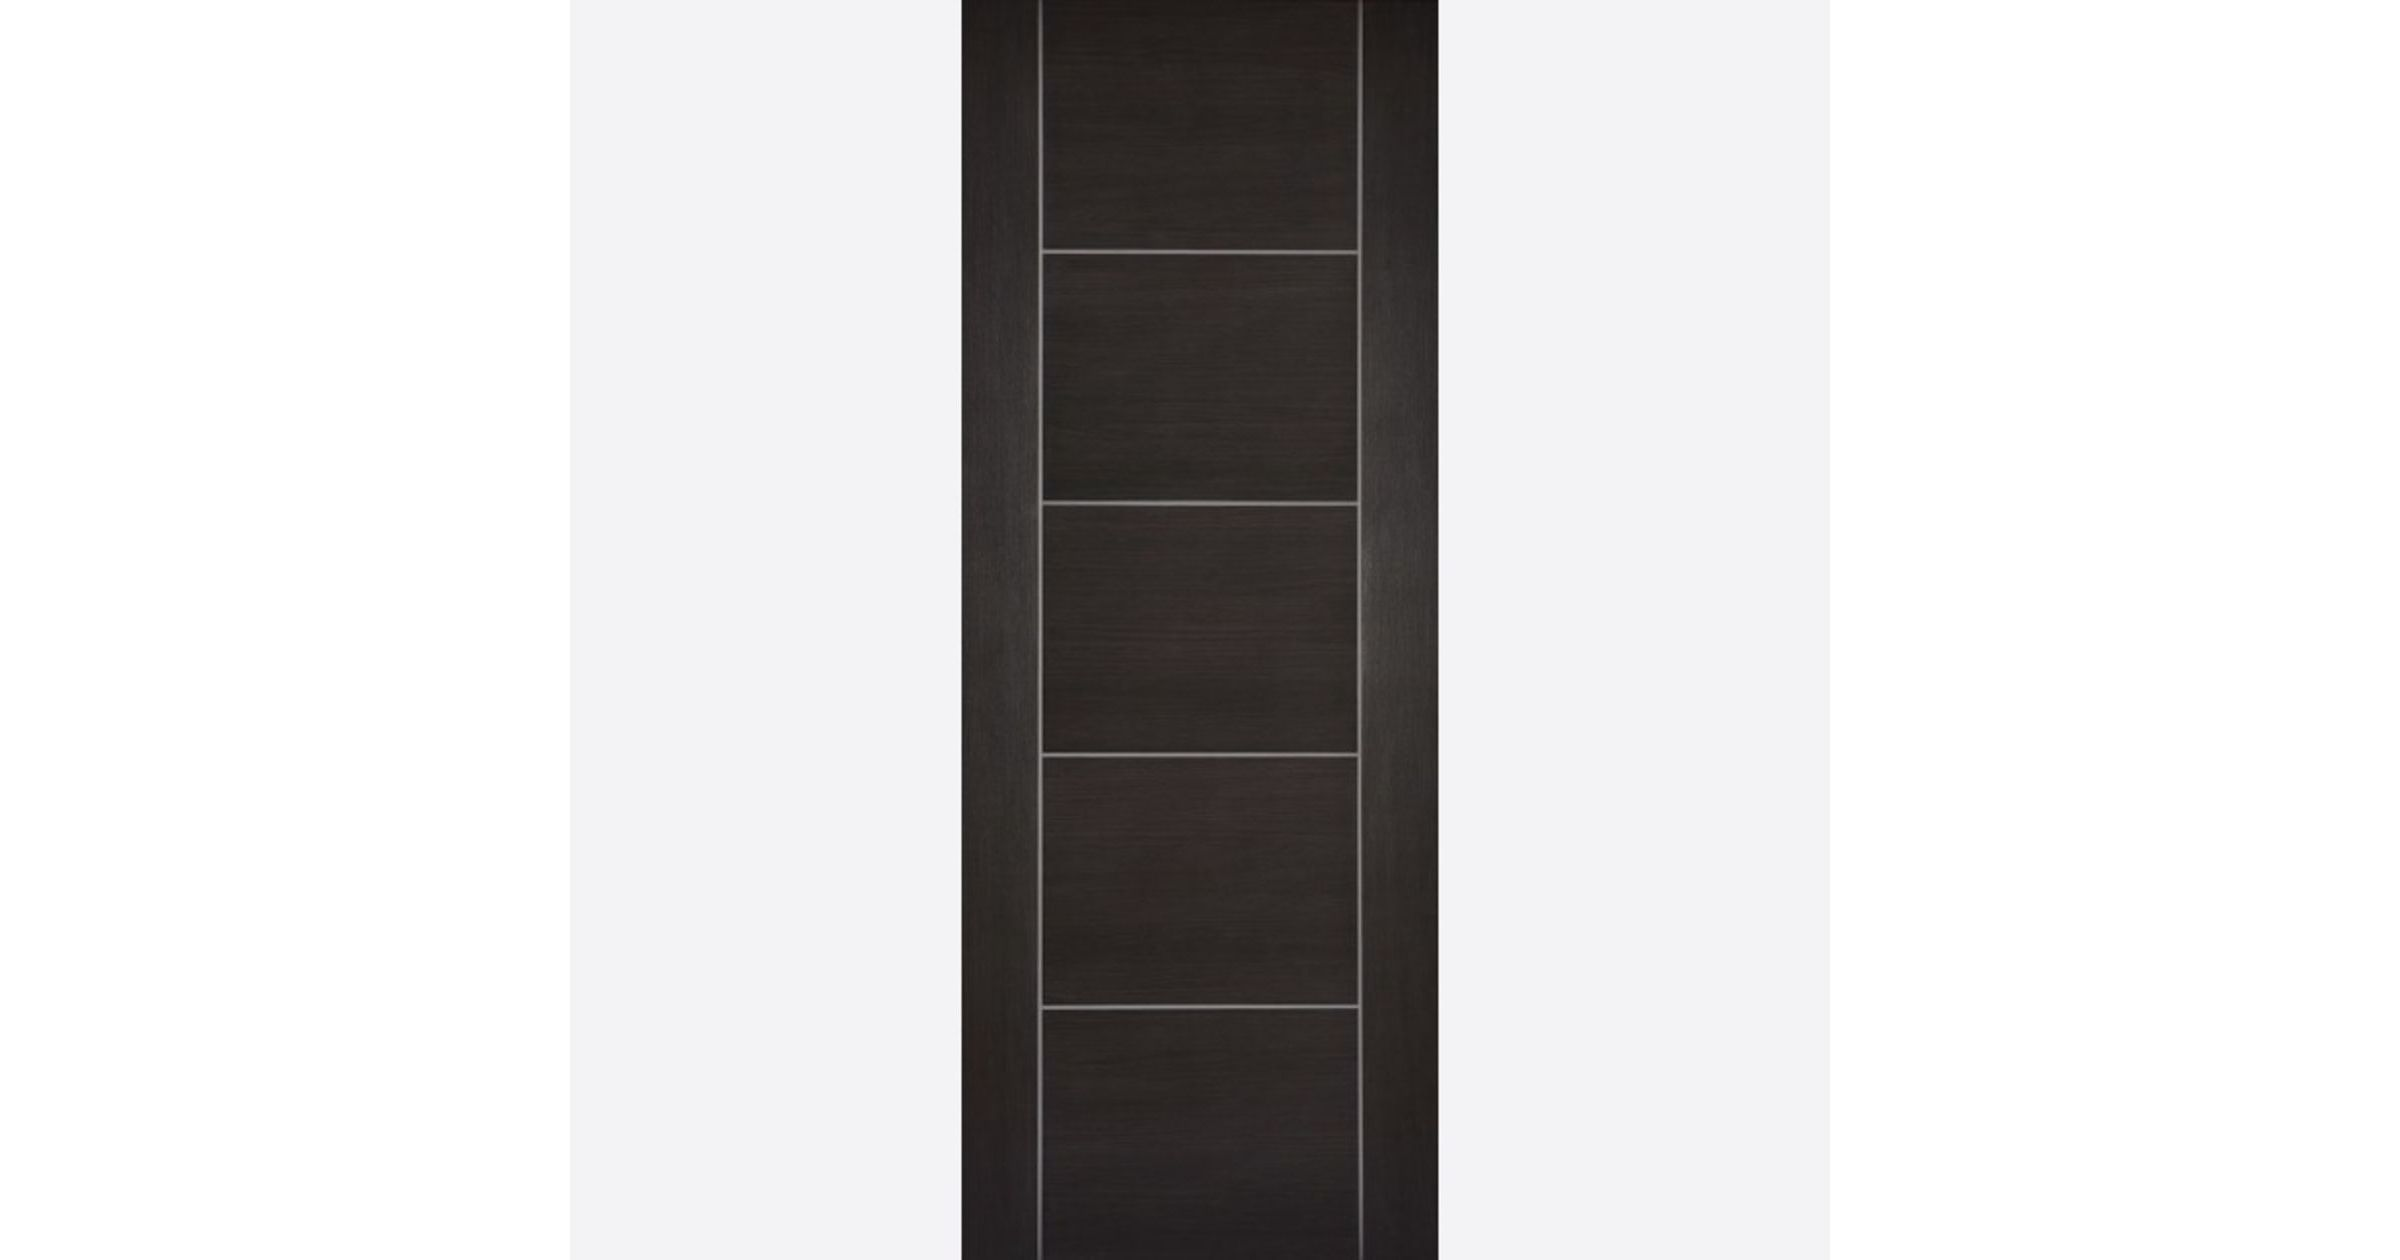 Vancouver Door Flush *Pre-Finished Dark-Grey Laminate* 35mm Internal - LPD Laminate Doors & Vancouver Door: Flush *Pre-Finished Dark-Grey Laminate* 35mm Internal - LPD Laminate Doors